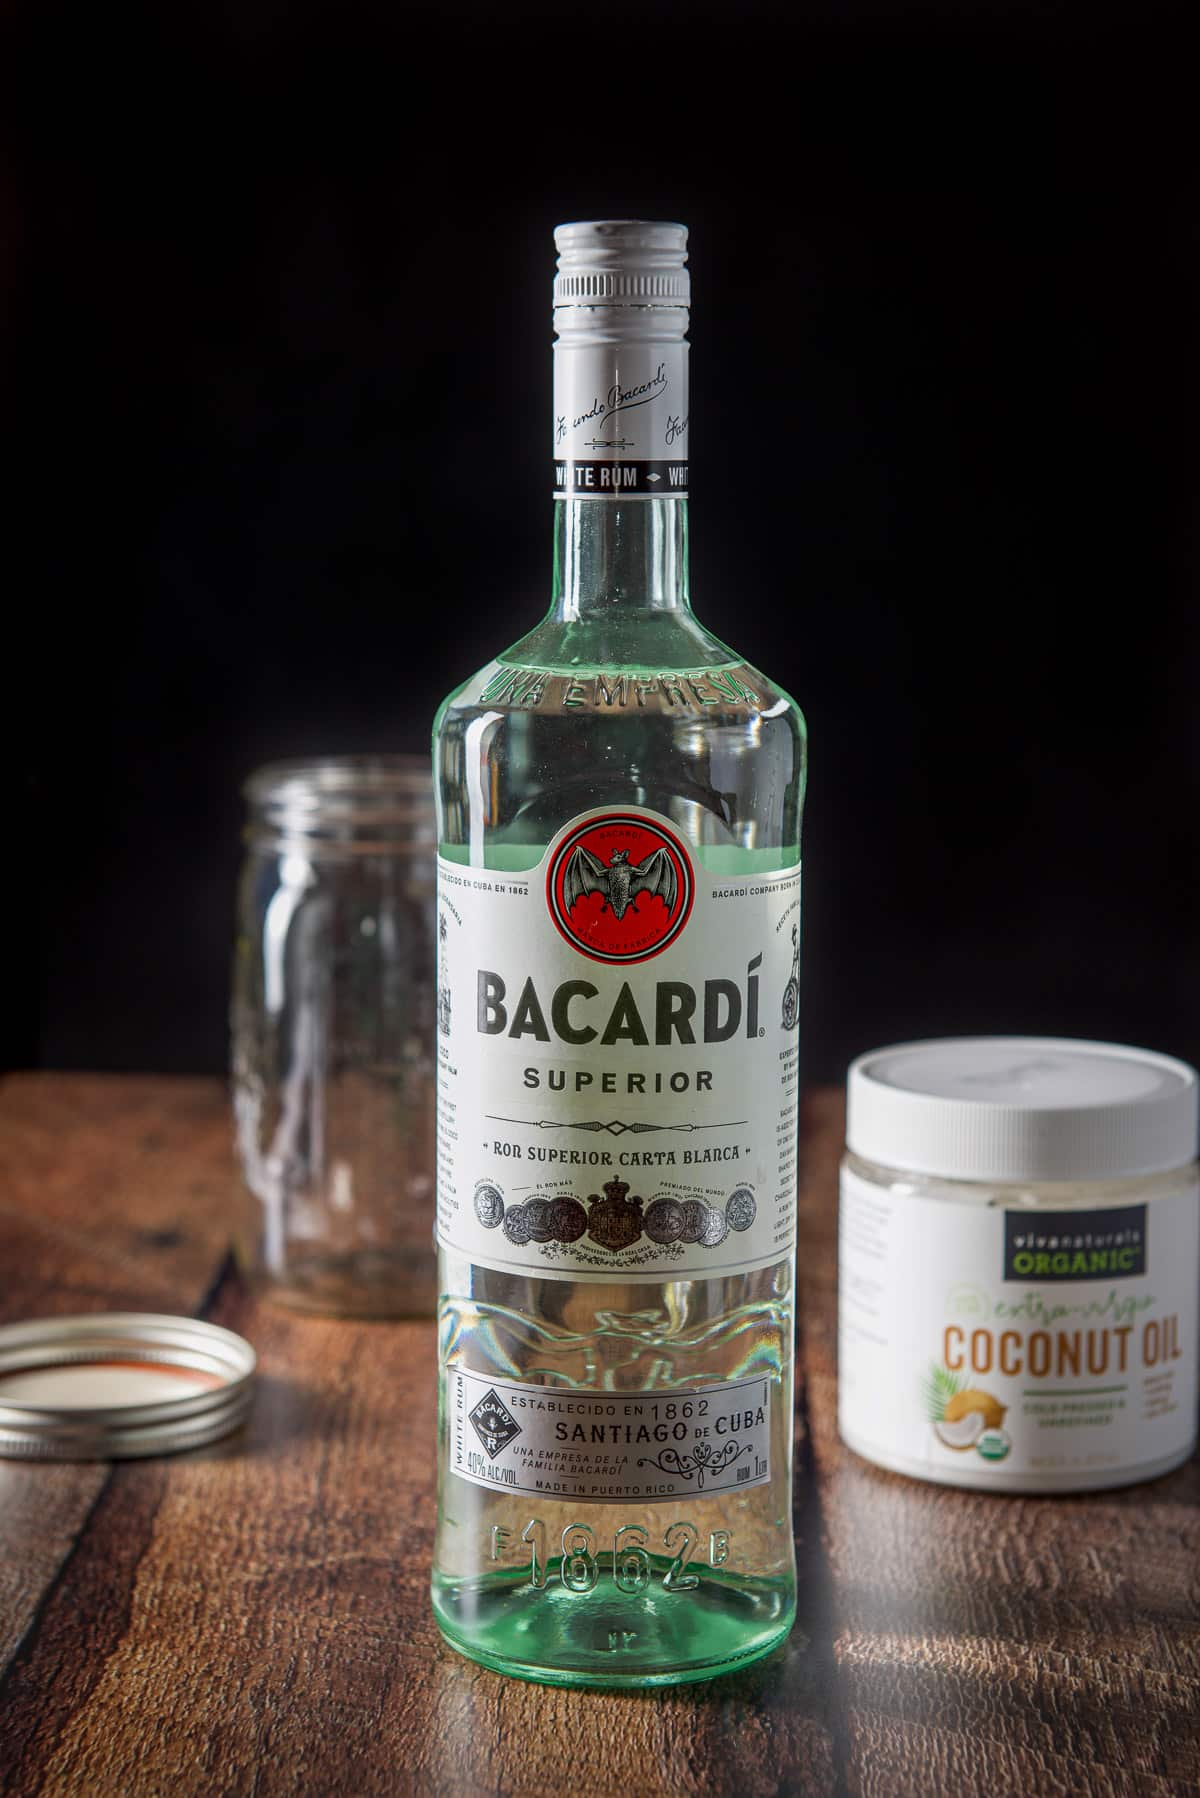 Rum, coconut oil and a jar and lid on a wooden table